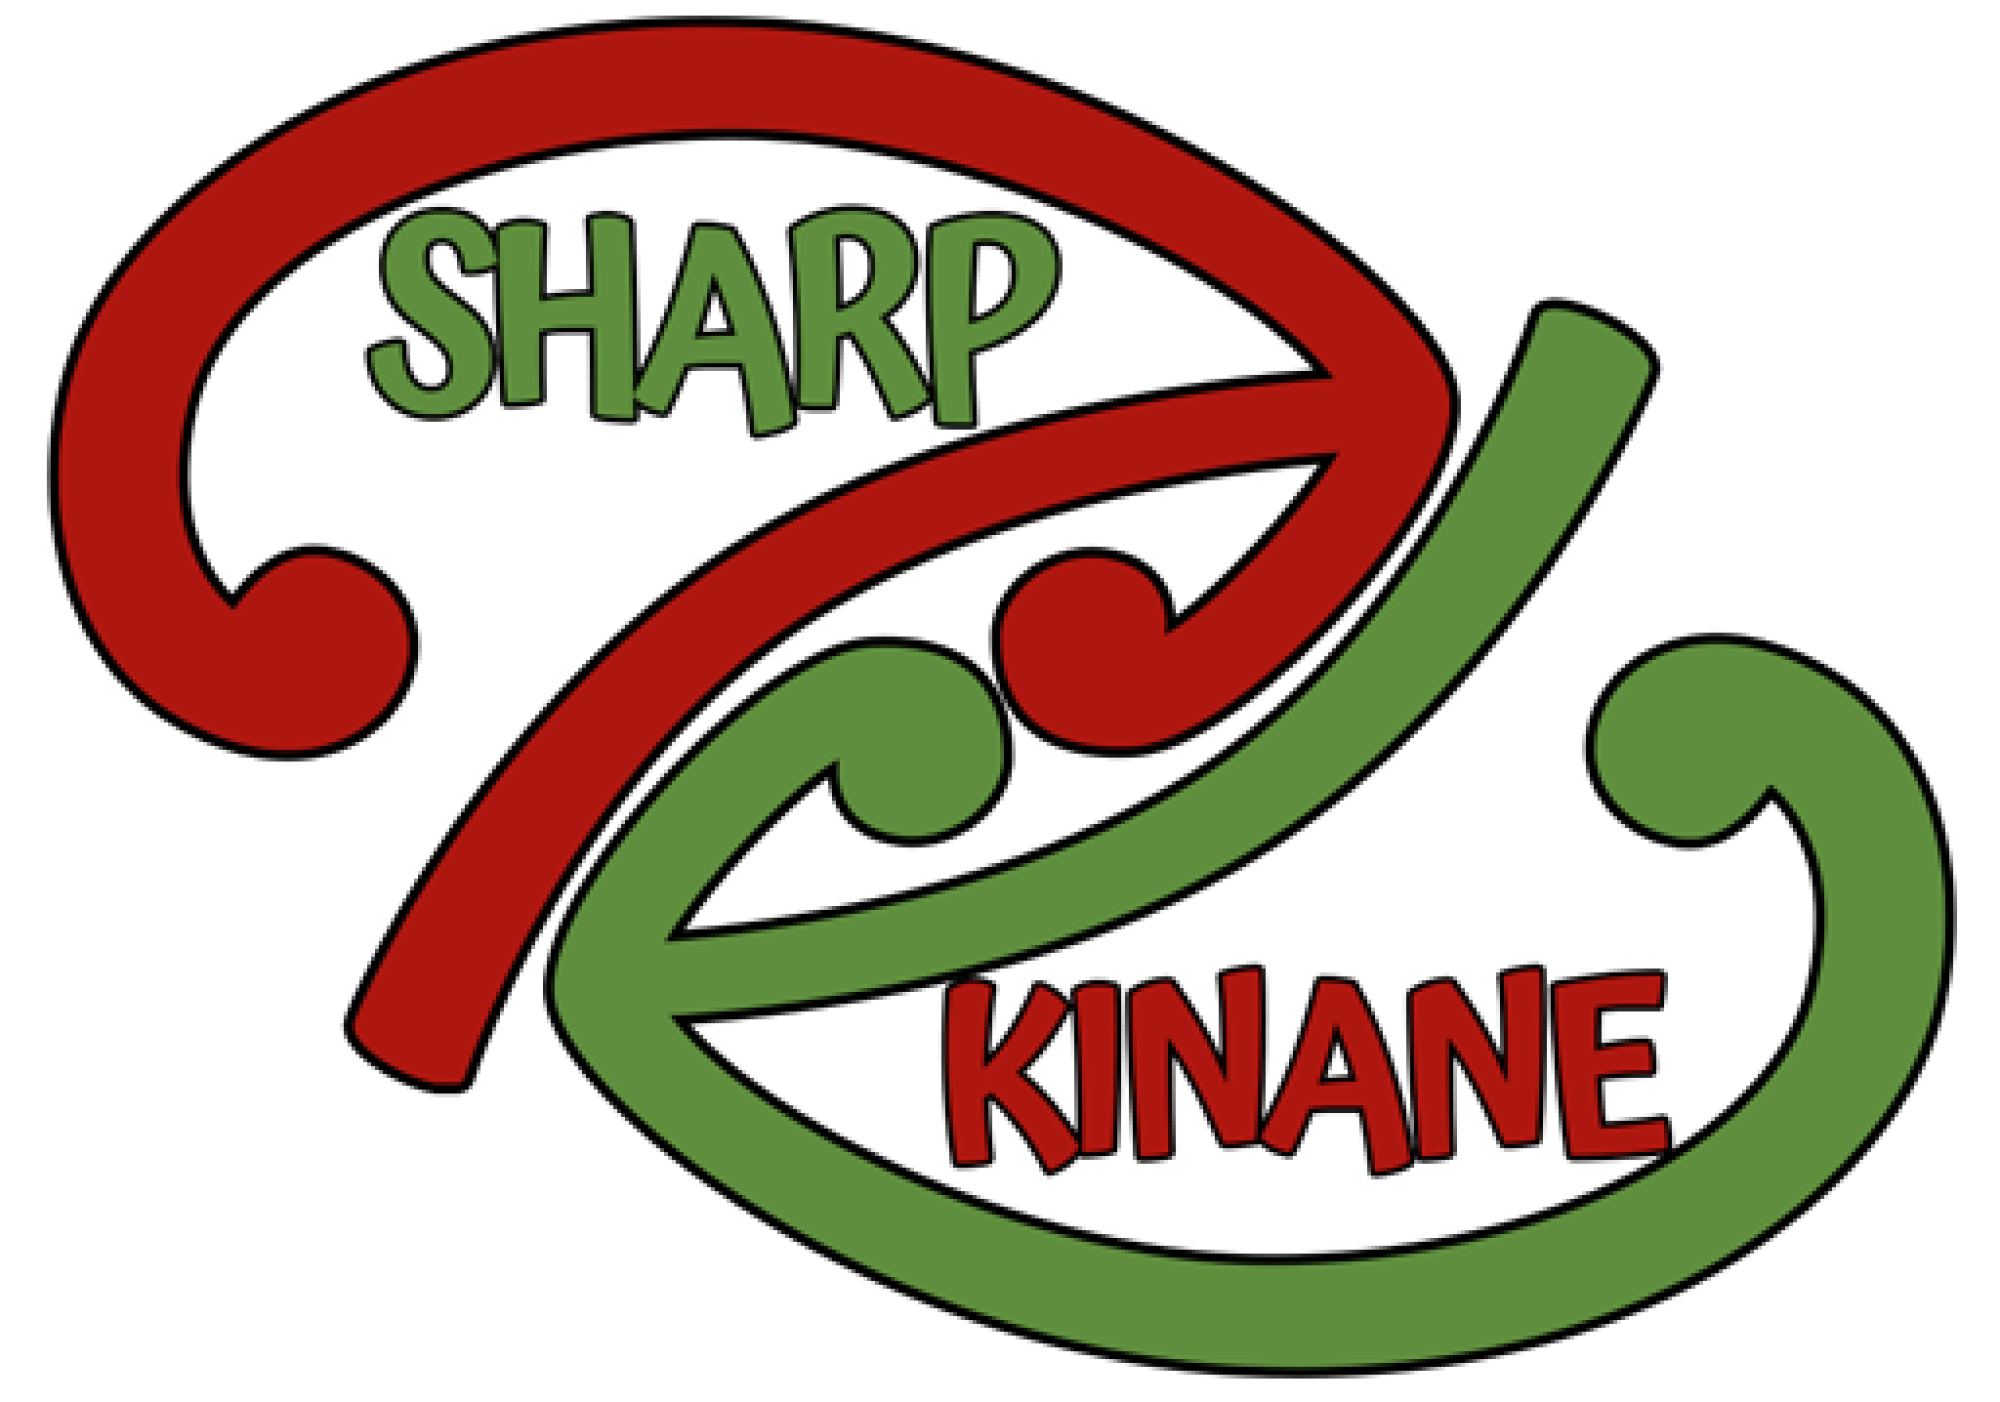 Sharp, Kinane Limited